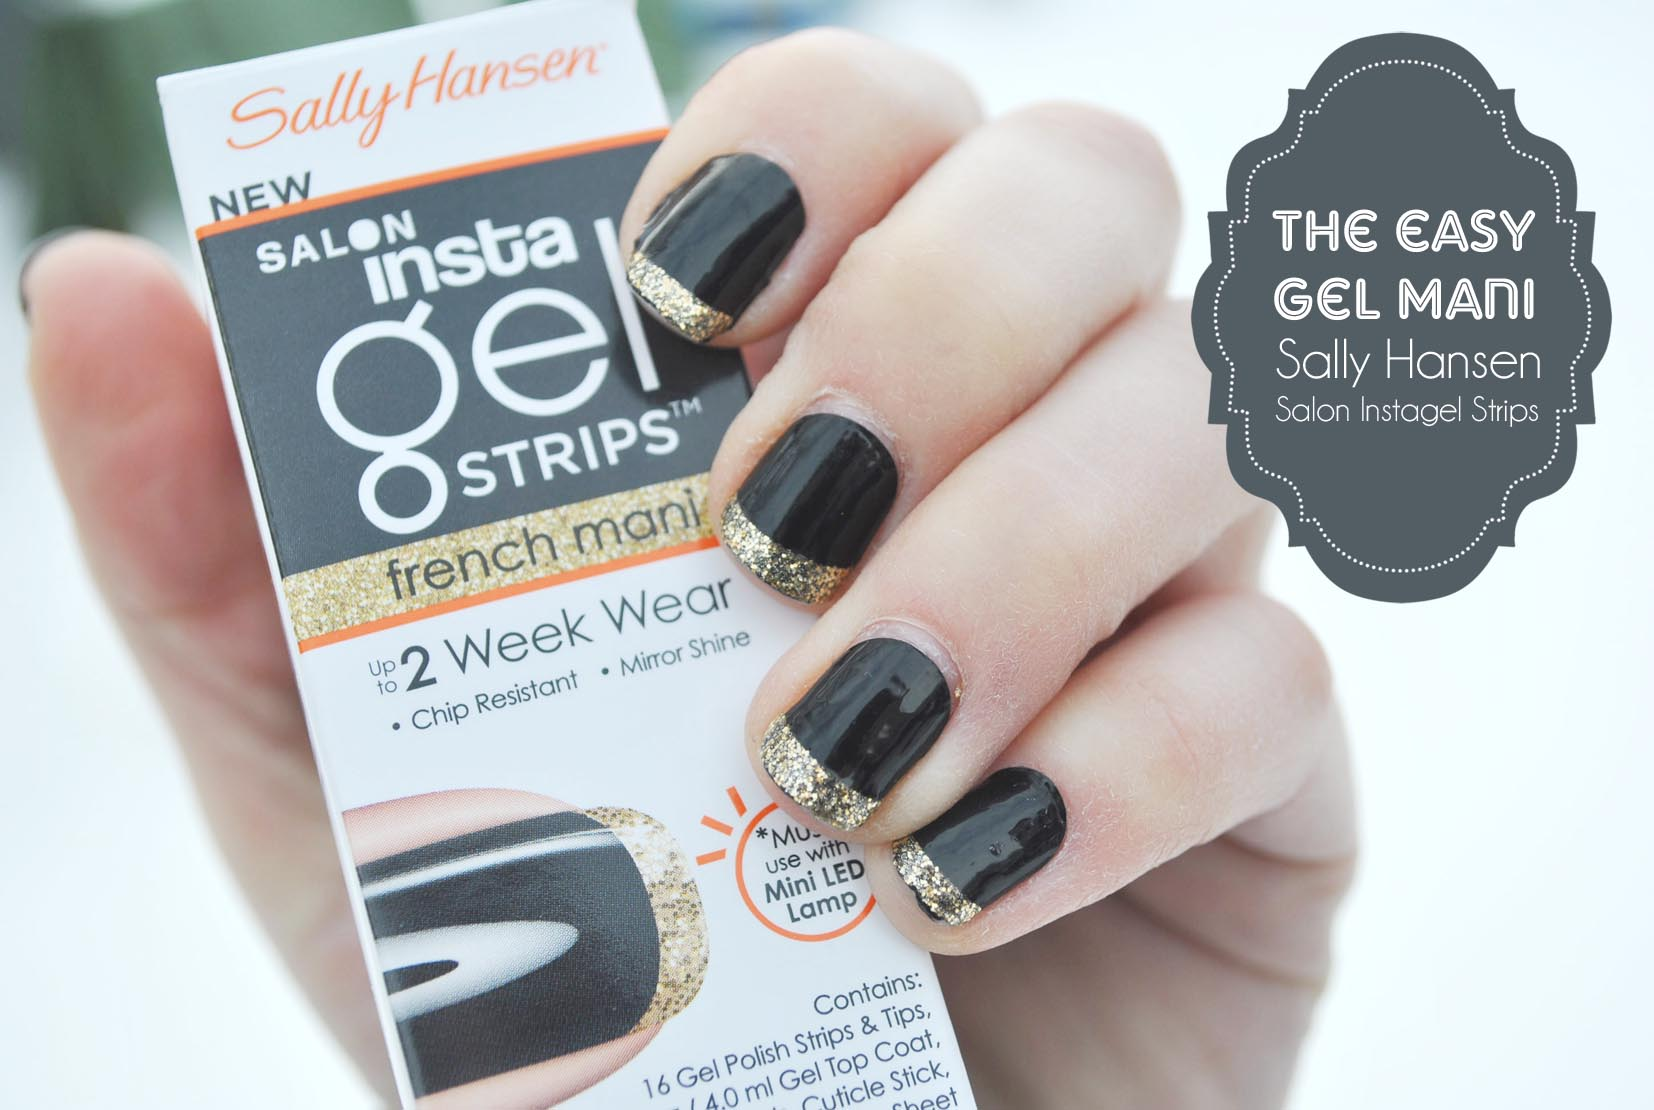 The Easy Gel Mani Sally Hansen Insel Strips Giveaway